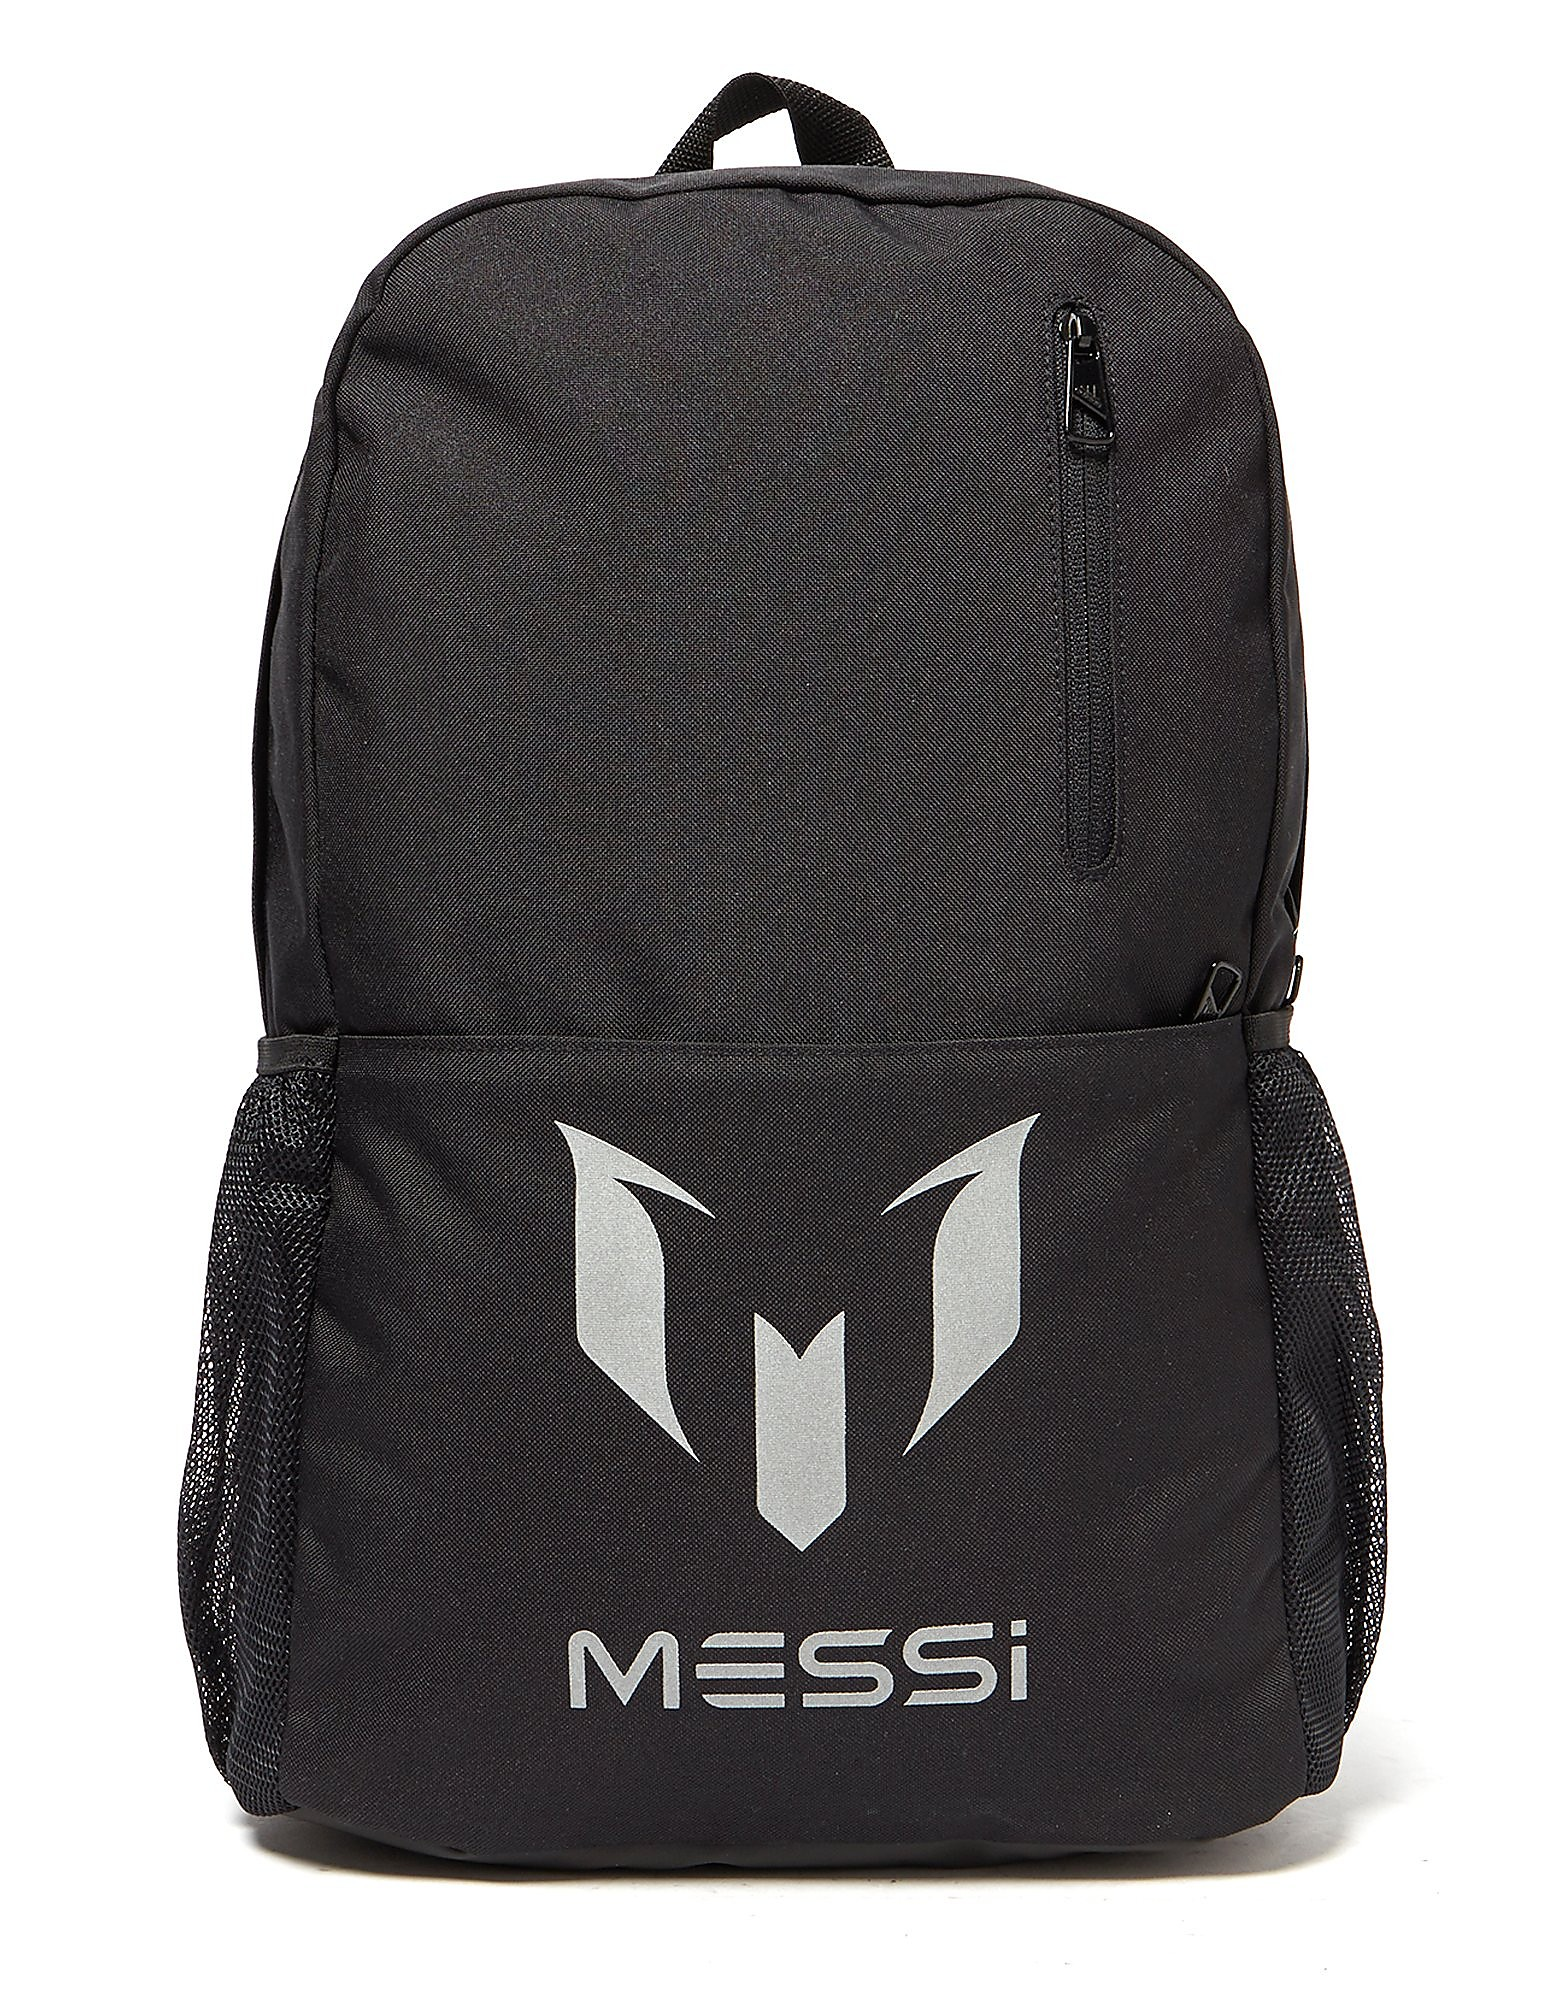 adidas Messi Backpack